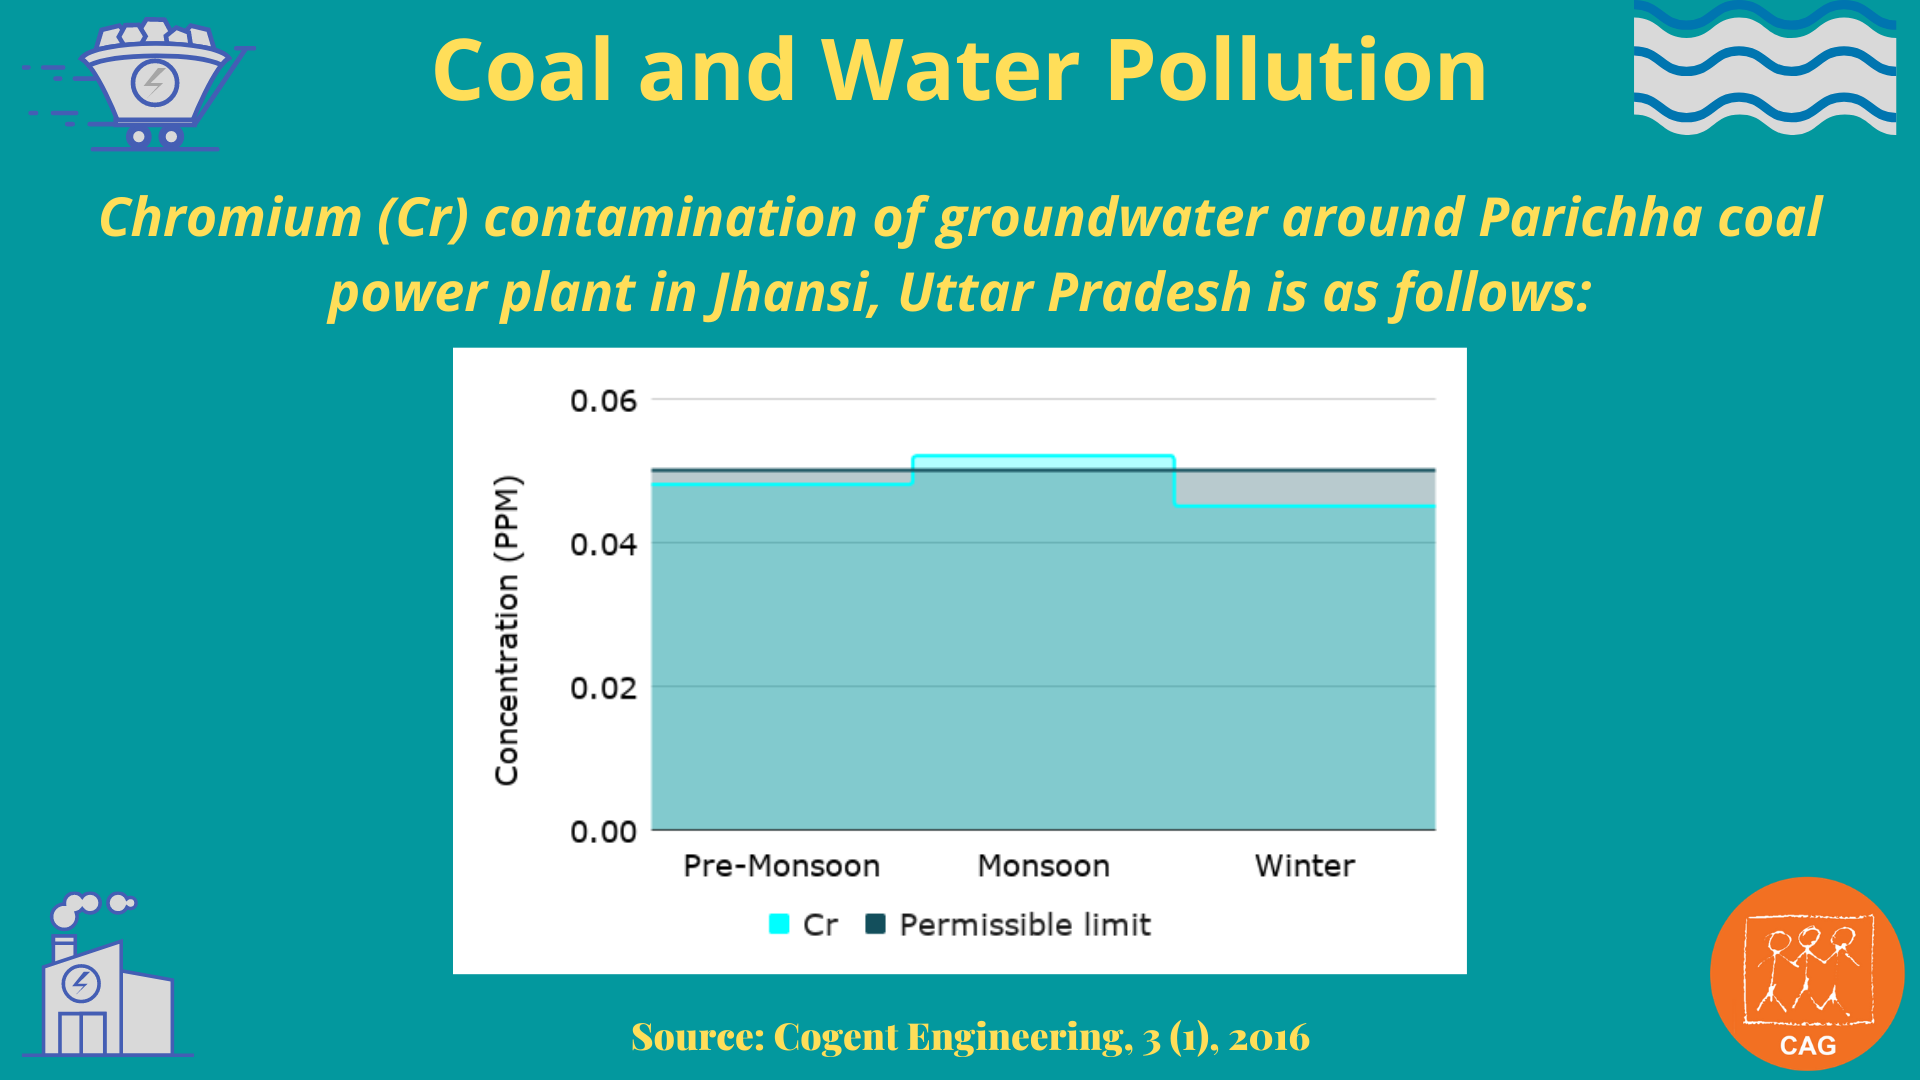 Coal and water pollution 5